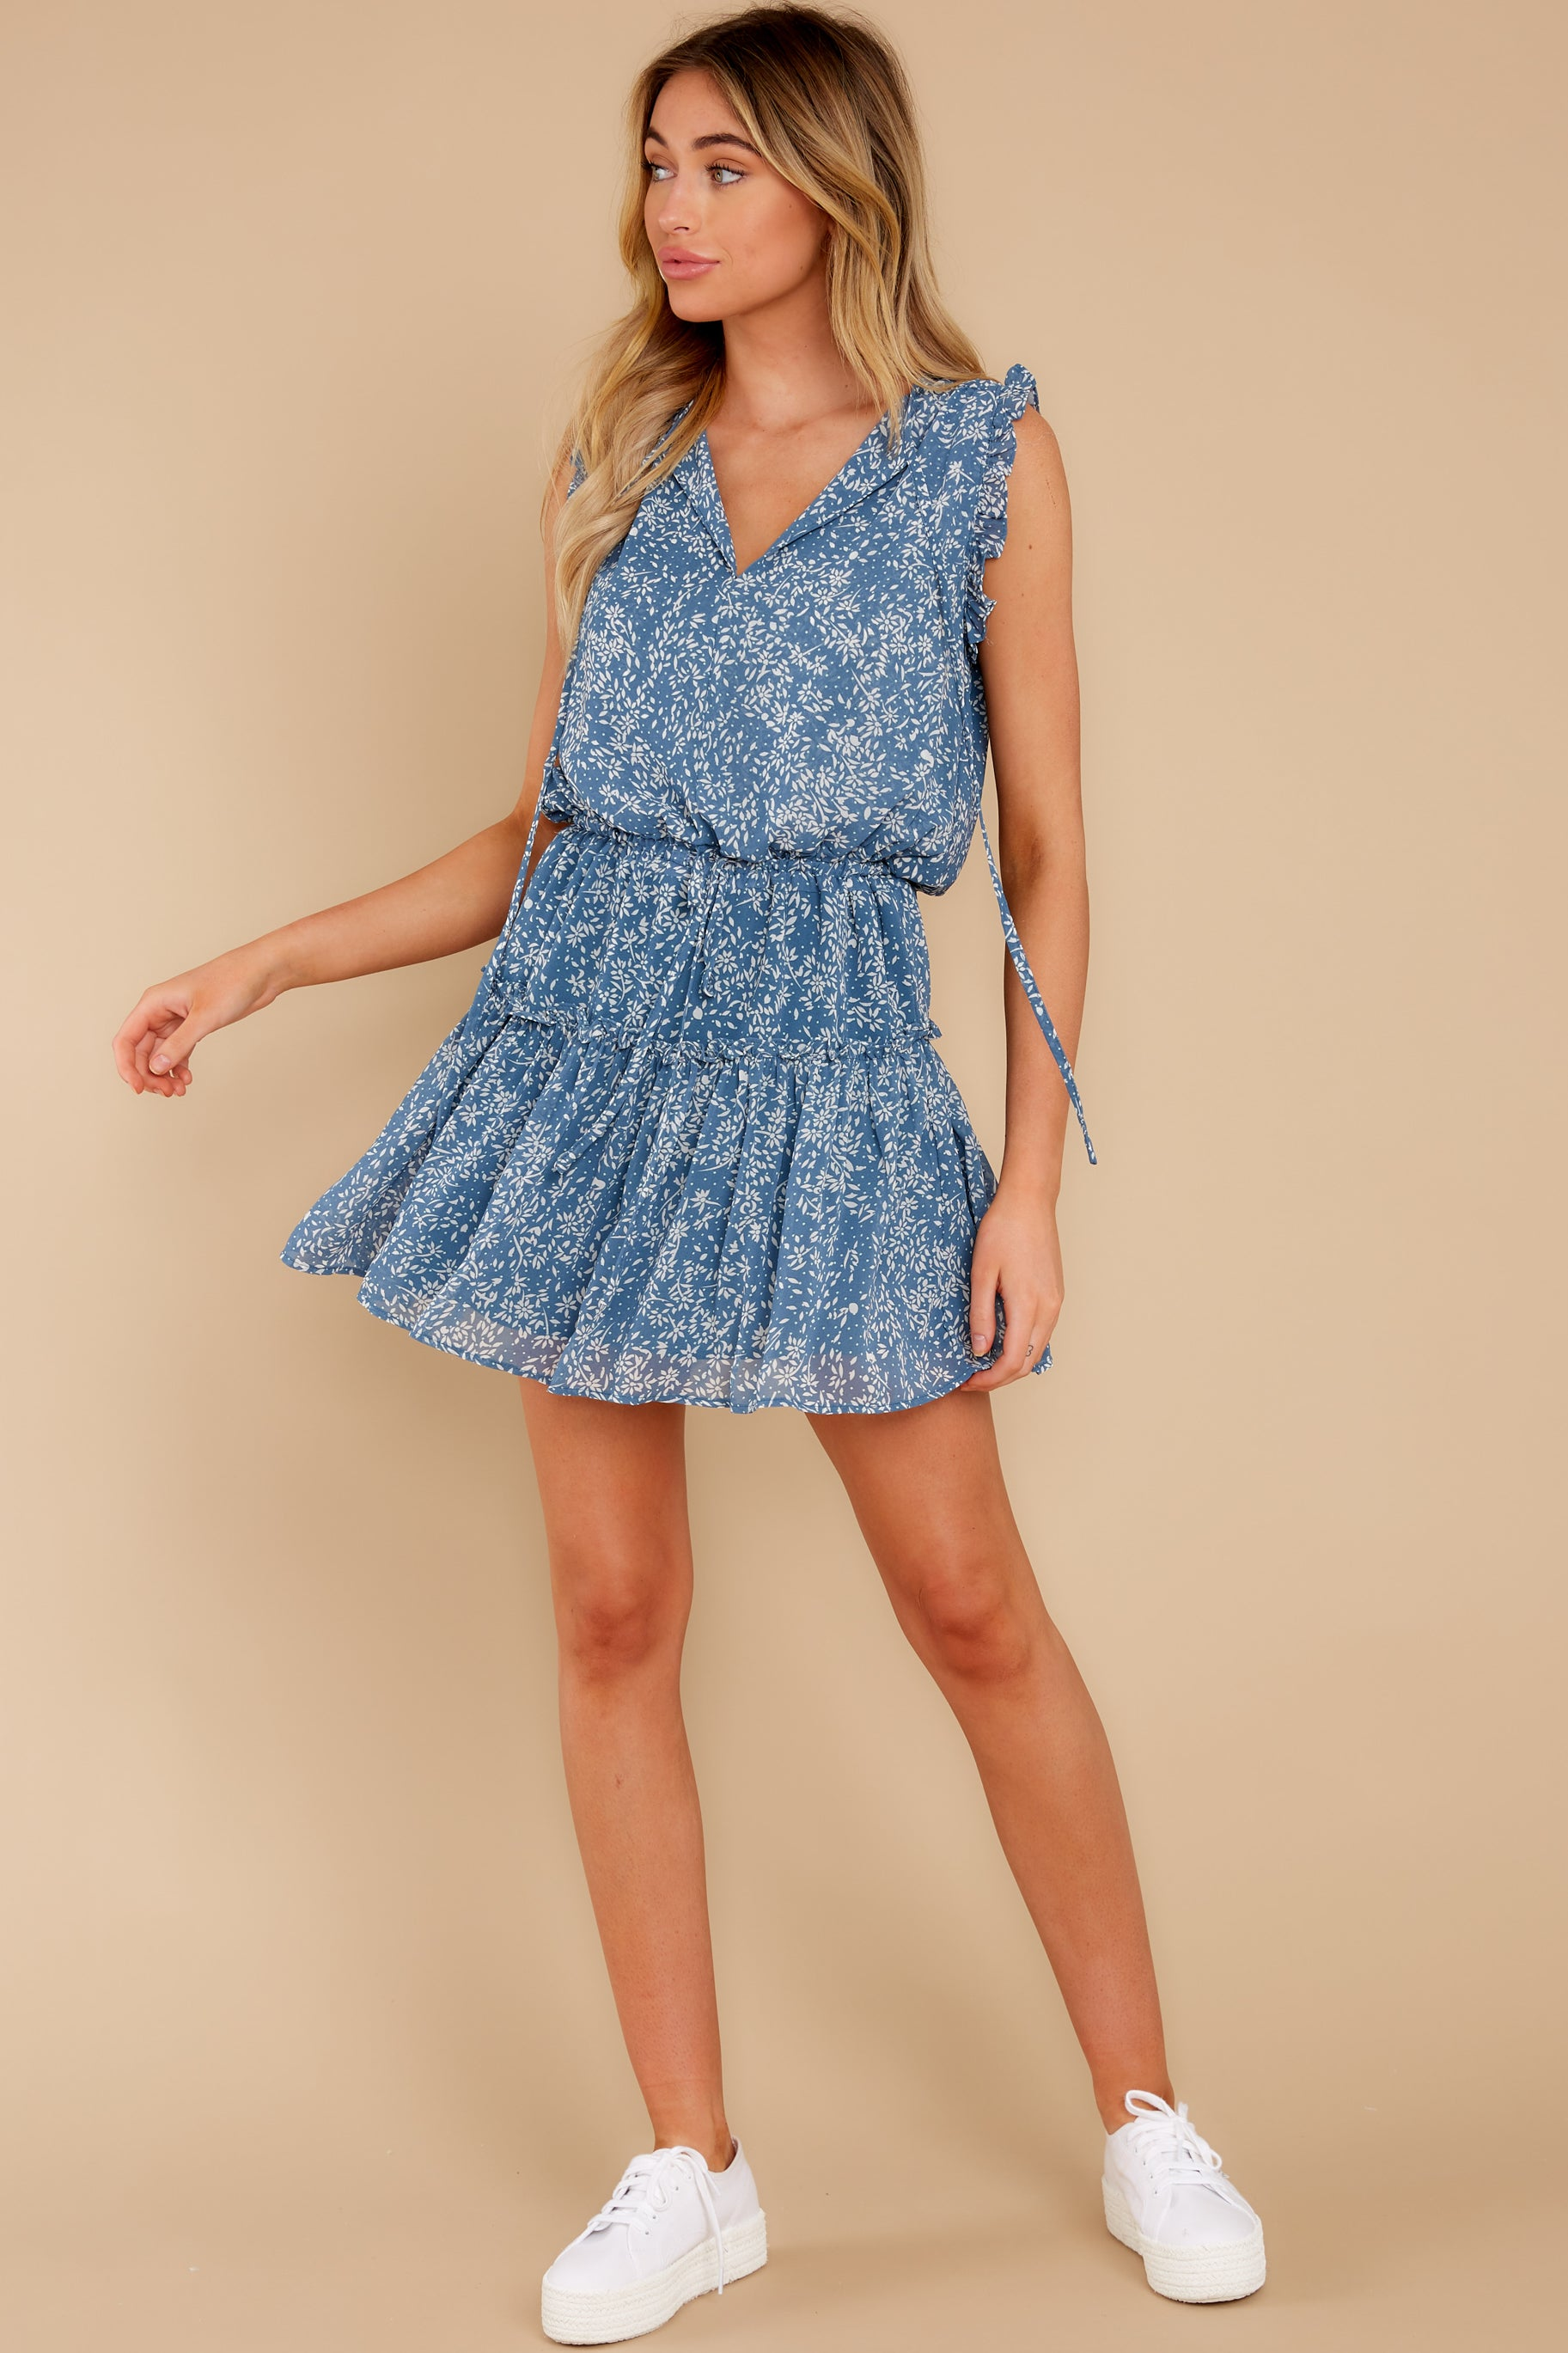 Dialed In Dusty Blue Print Dress